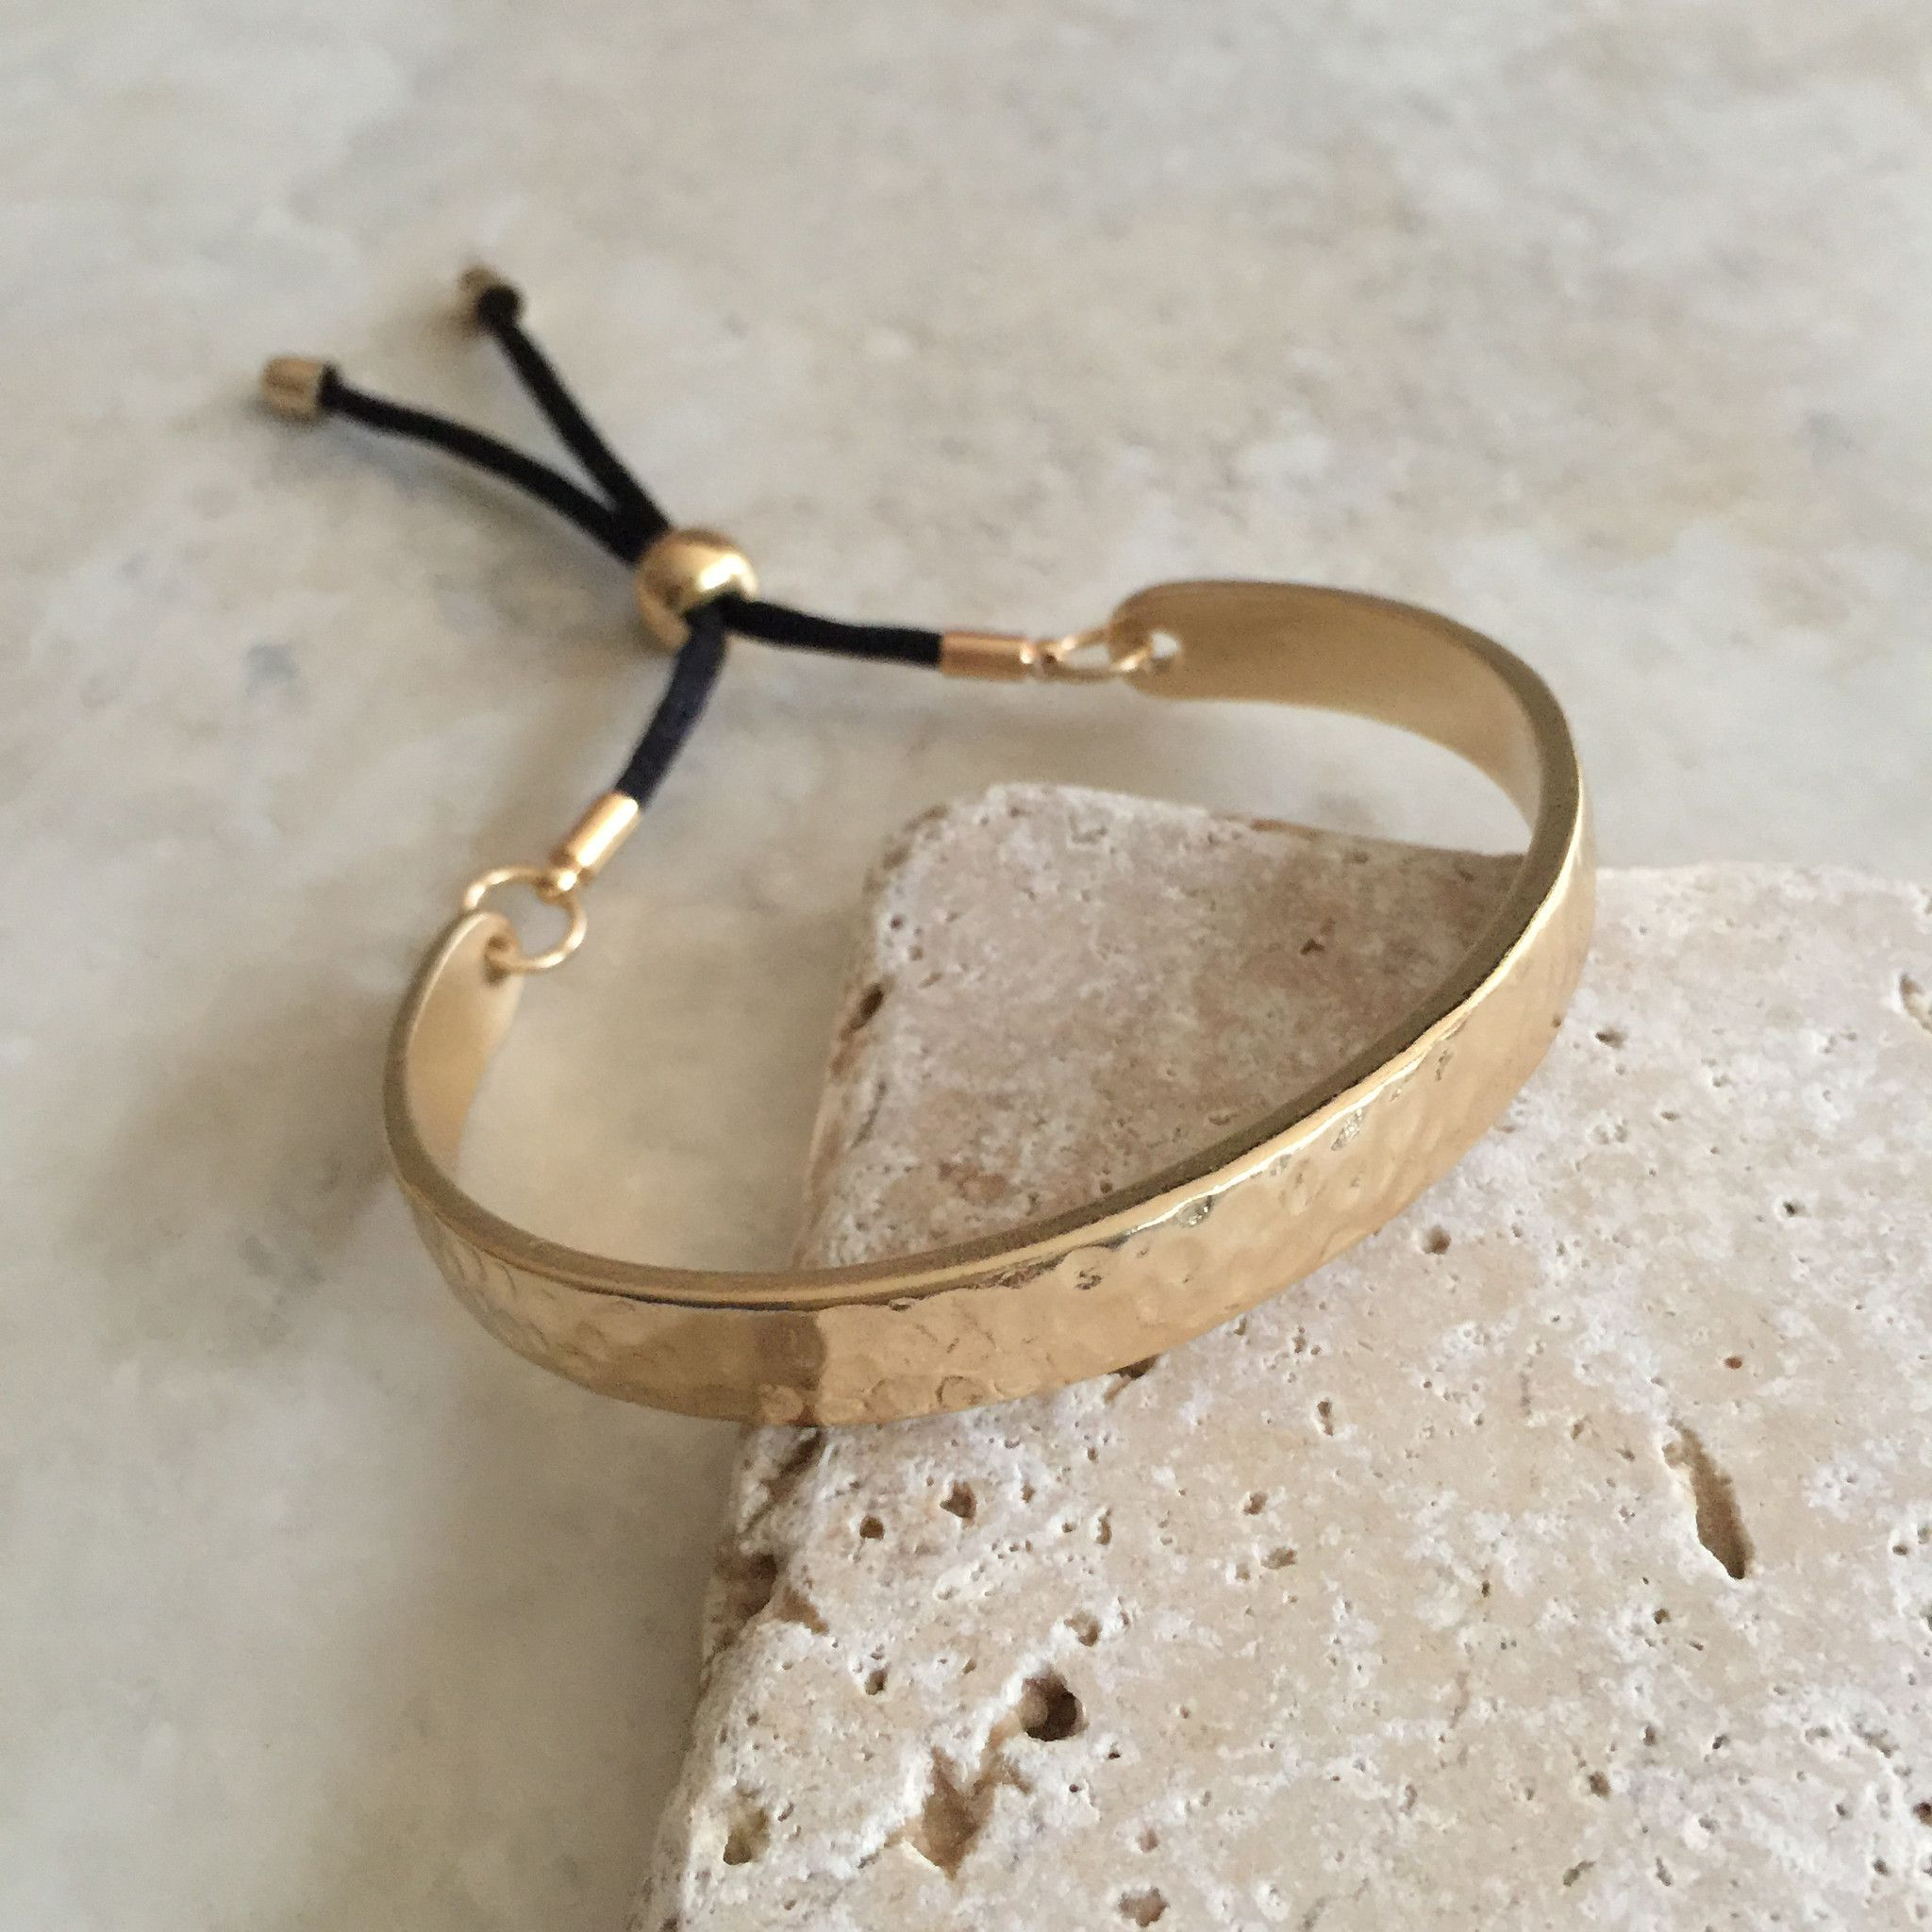 Bar and rope cuff bracelet hammered gold tone finish buy gold